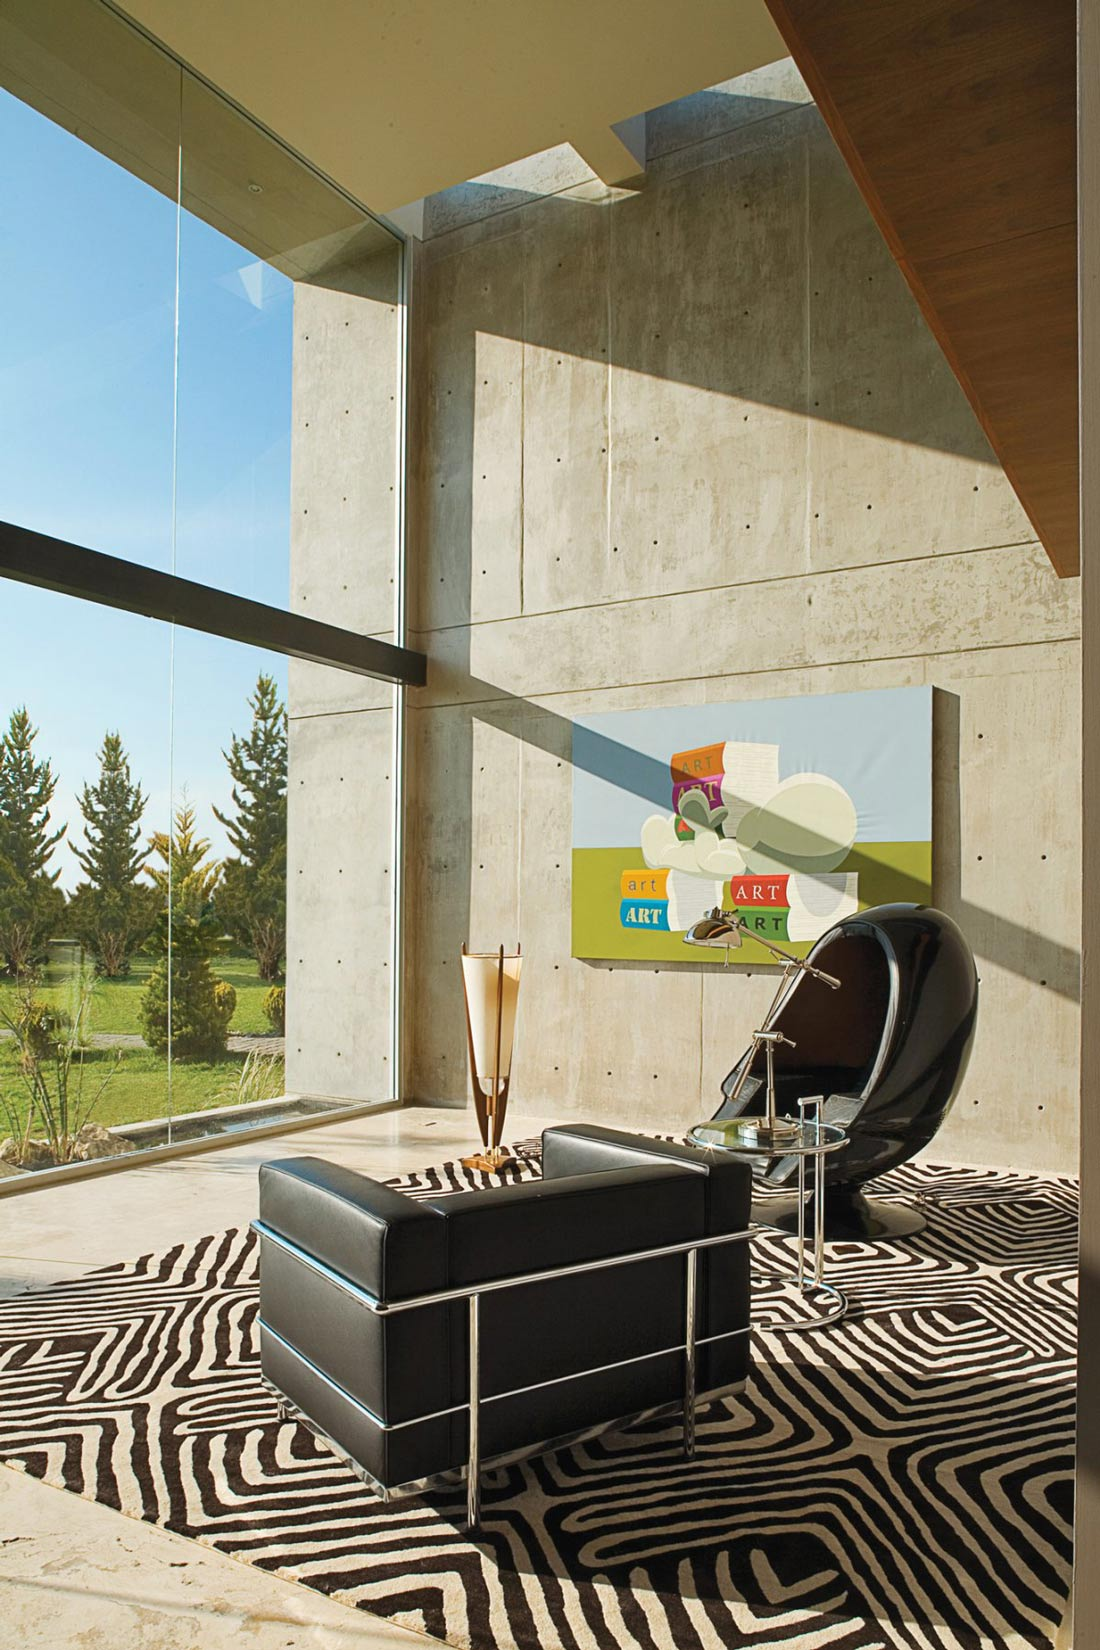 Exposed Concrete, Glass Wall, GP House in Hidalgo, Mexico by Bitar Arquitectos